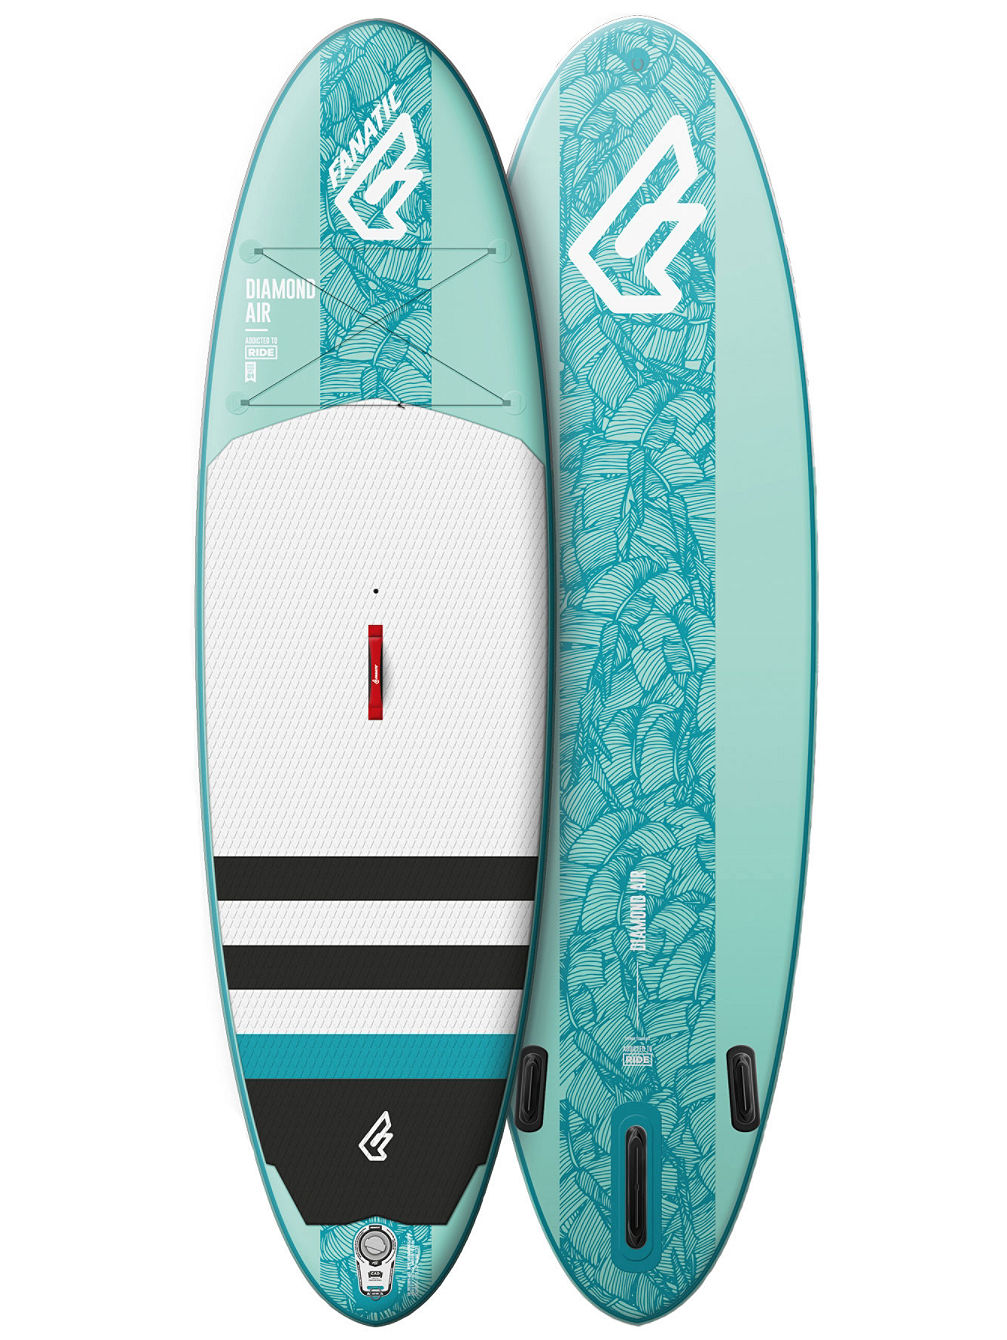 Diamond Air 9.8 SUP Board